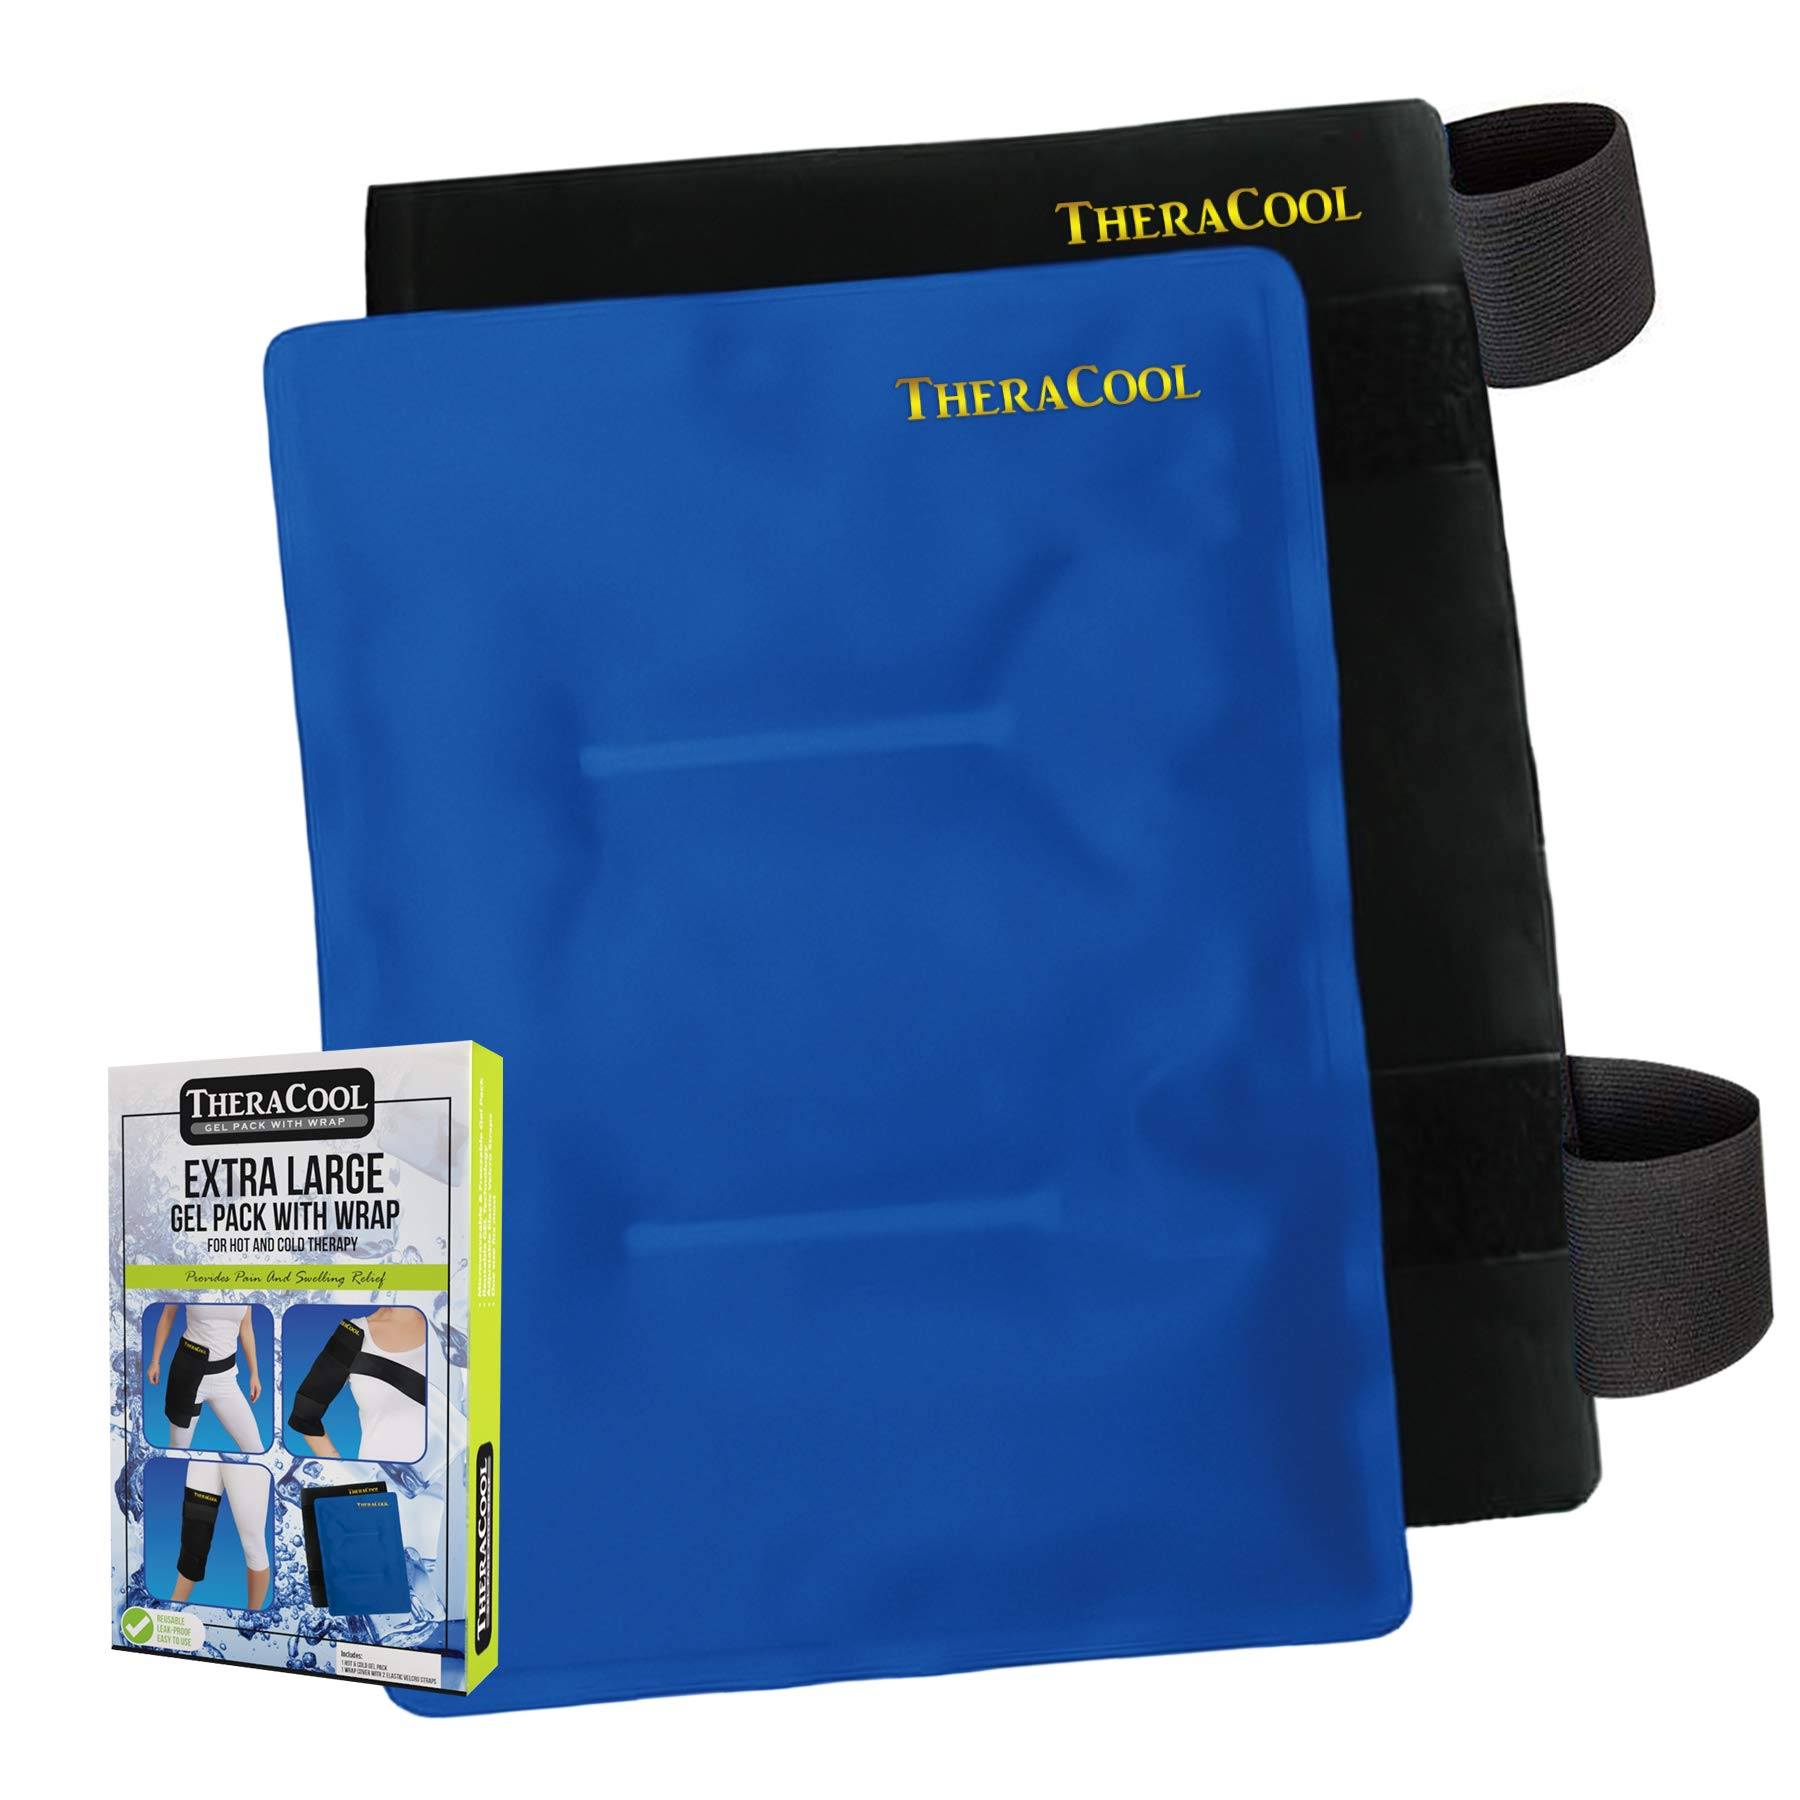 Ice Packs for Injuries Reusable Large Hot Cold Gel Pad Wrap w/Strap for Back Knee Shoulder Rotator Cuff Hip Replacement Elbow Arthritis Surgery Pain Relief Flexible Recovery Bag 14 x 11 by TheraCool by TheraCool (Image #1)